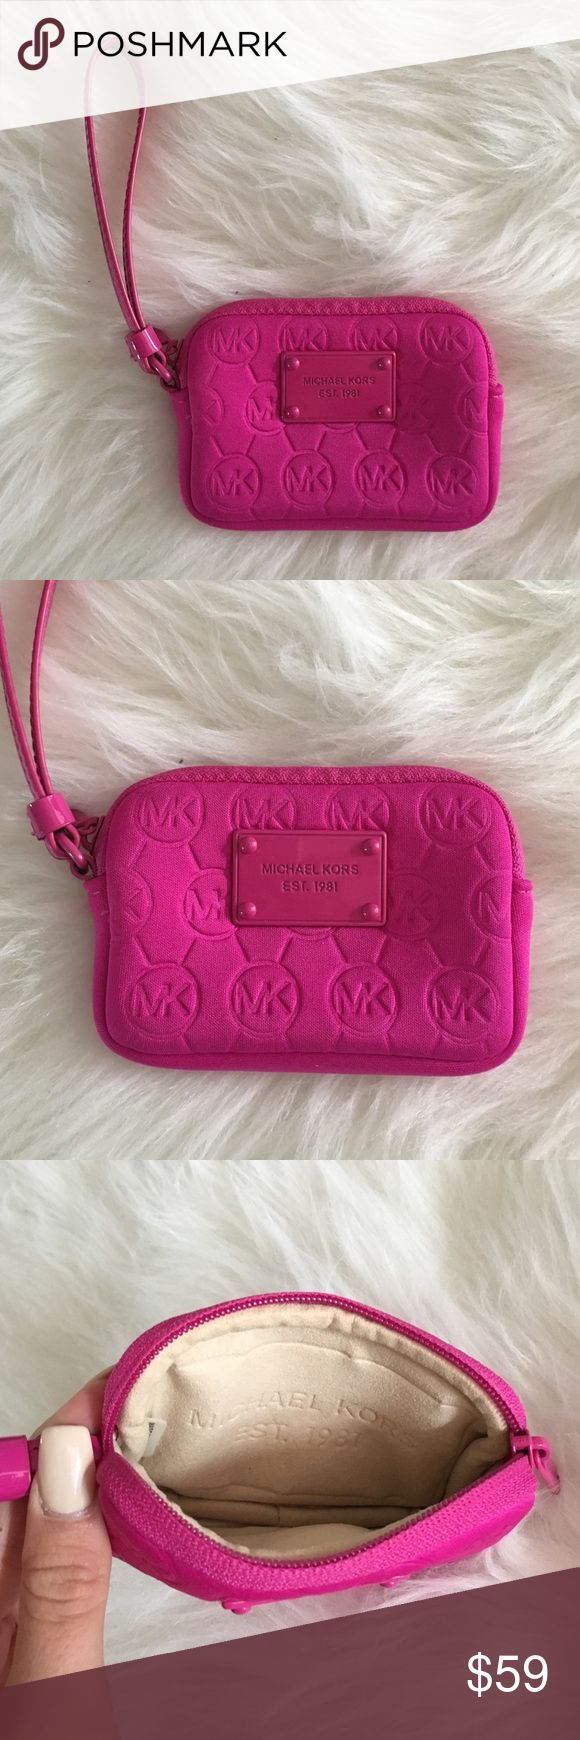 "MICHAEL KORS Small Wristlet - Bright Magenta Color MICHAEL KORS 5x3.5"" zip wristlet. Brand new condition, only used once. Neoprene foamy material, suede inside. Perfect for cash, cards, gum and a lipstick. Michael Kors Bags Wallets"